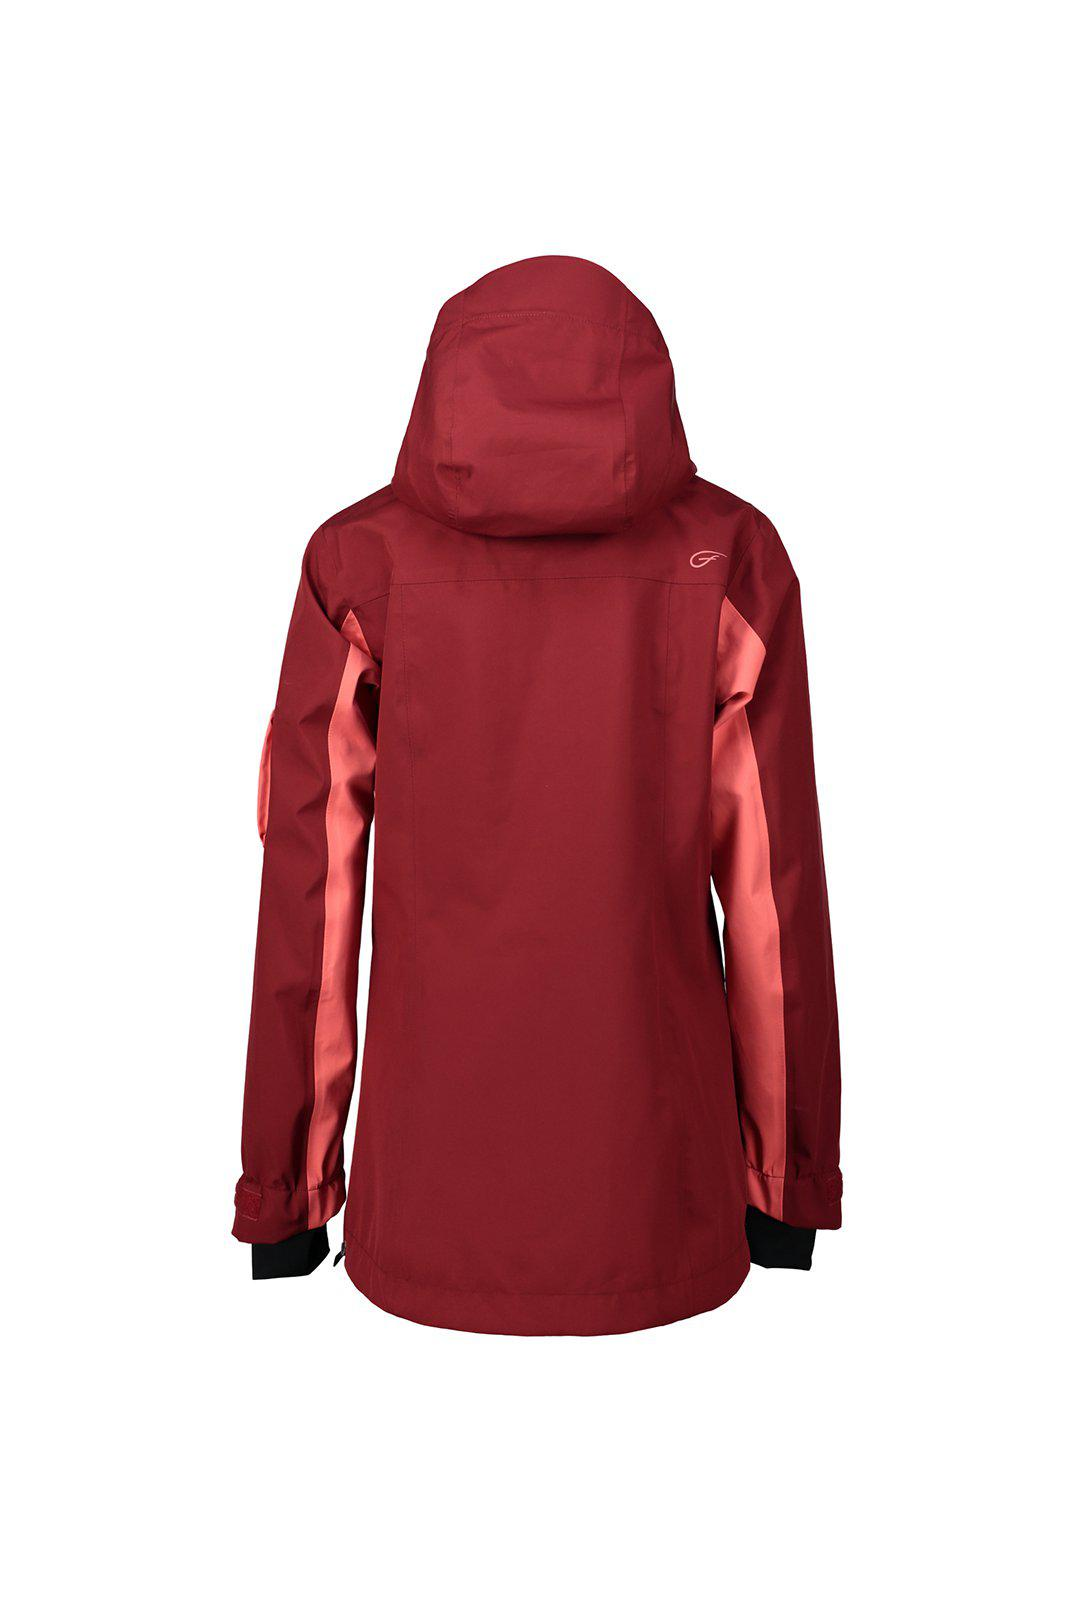 EVIKE JKT W DRY RED Five Seasons